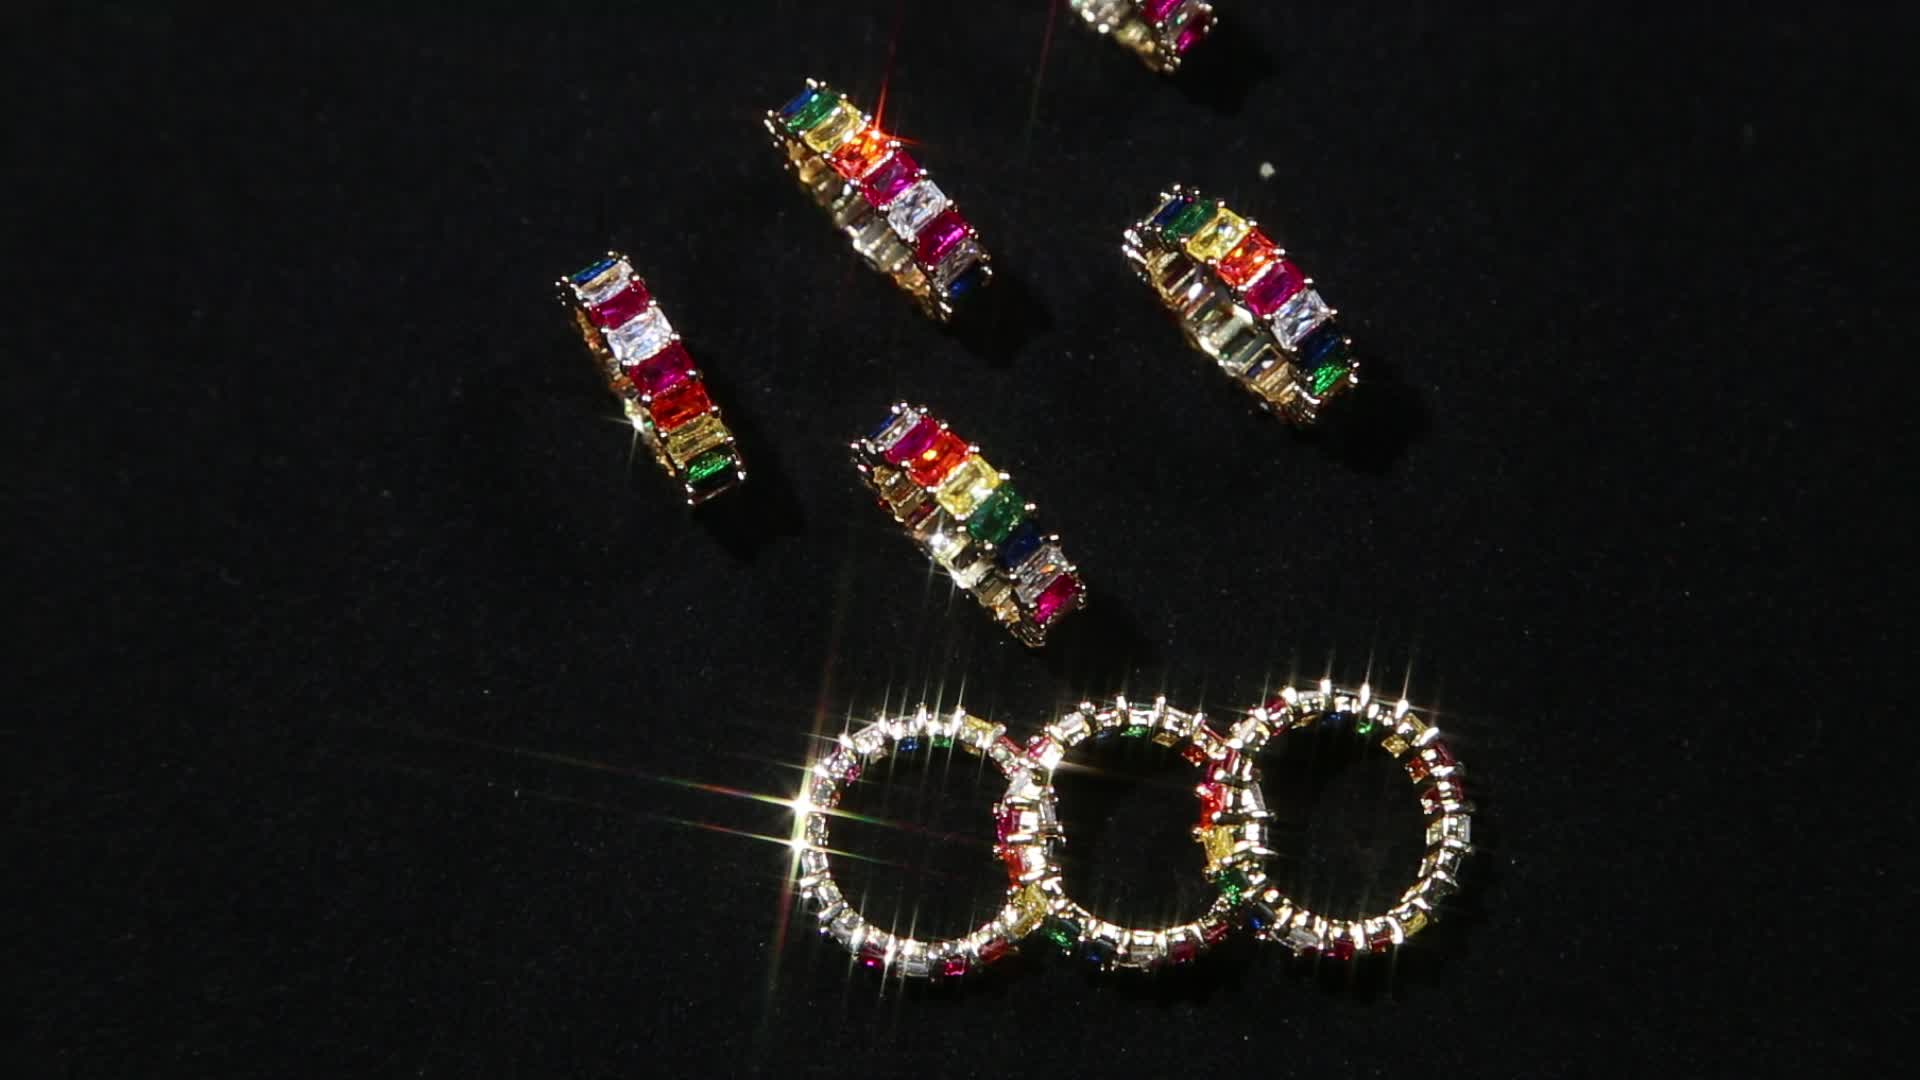 Gold plated ring fashion jewelry rainbow baguette cubic zirconia luxury european women full finger jewelry